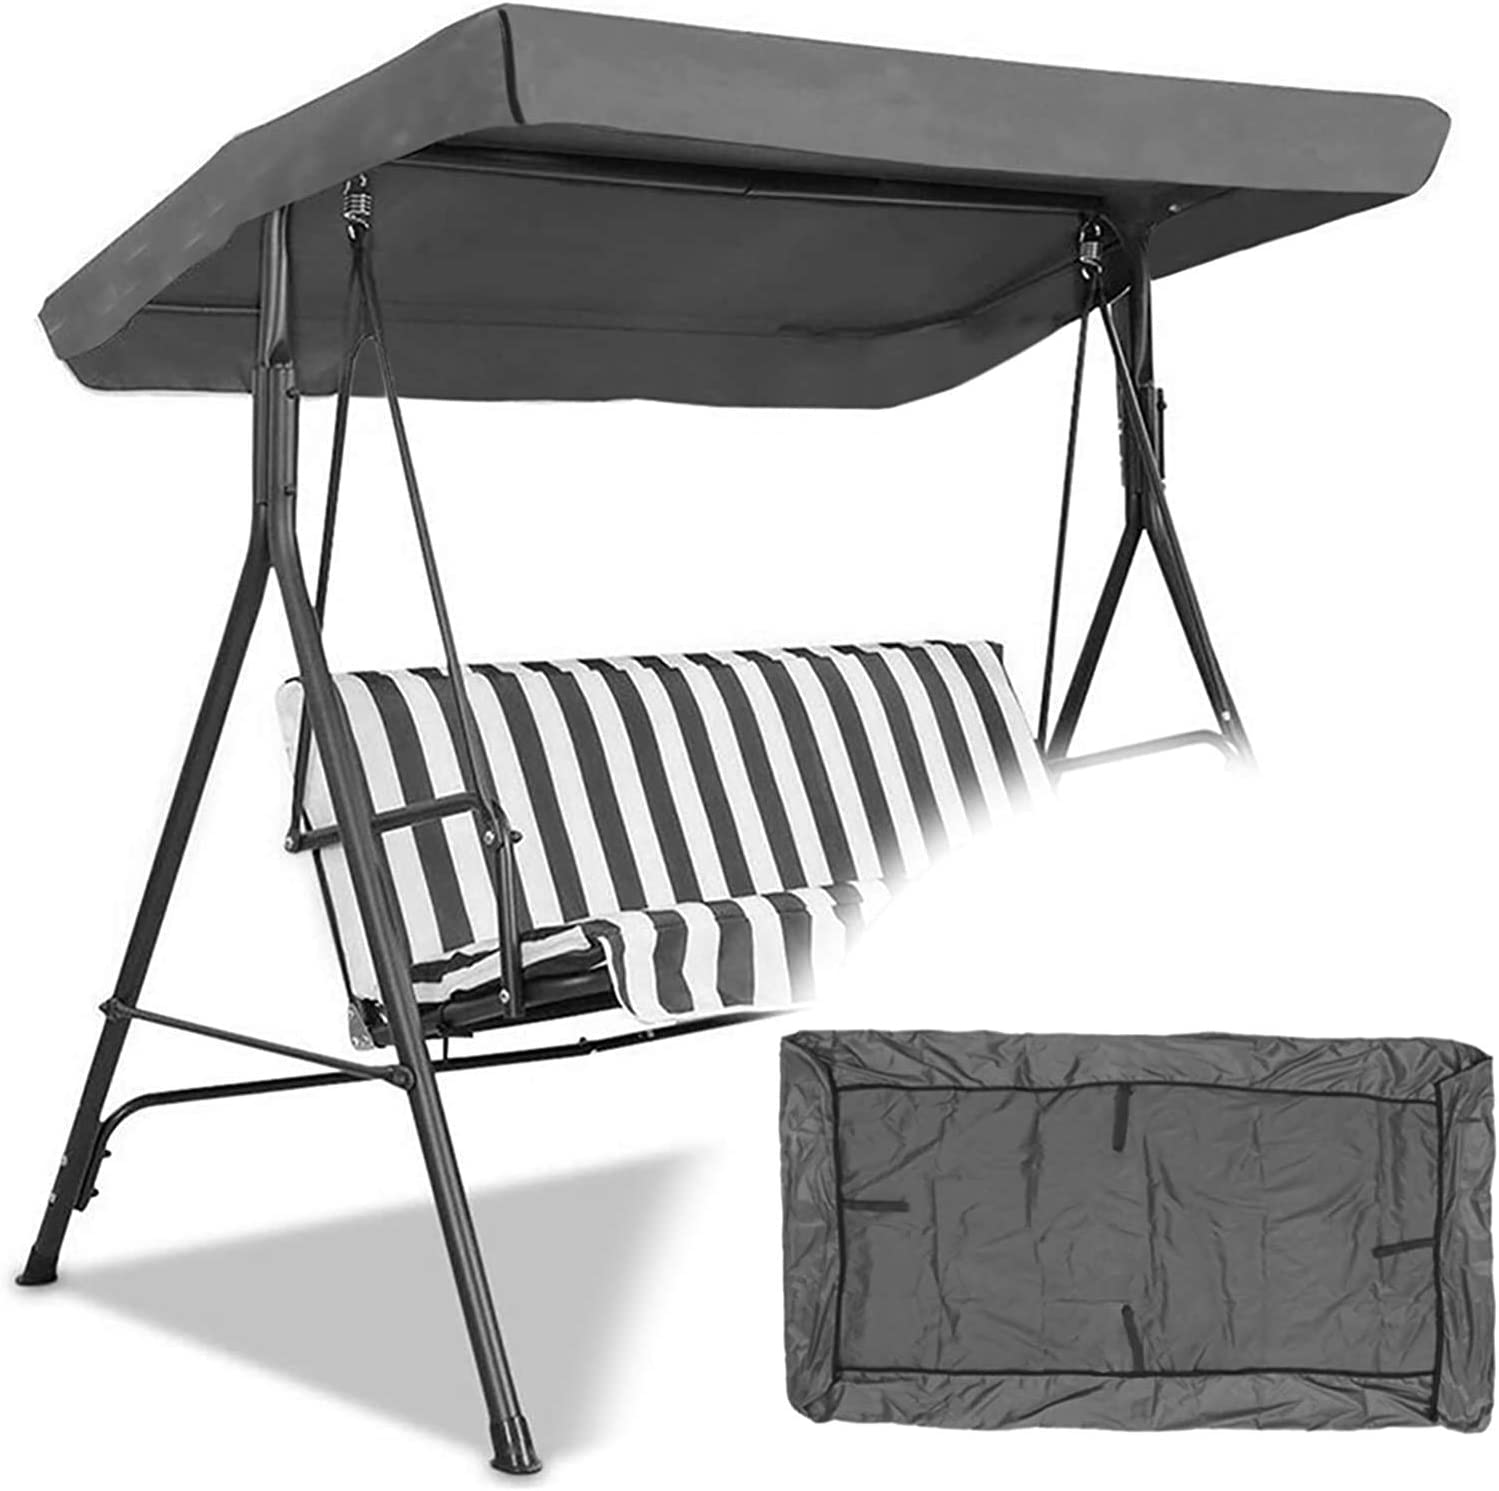 Patio Swing Canopy Replacement Cushions Co Cover 40% OFF Cheap Sale - Product